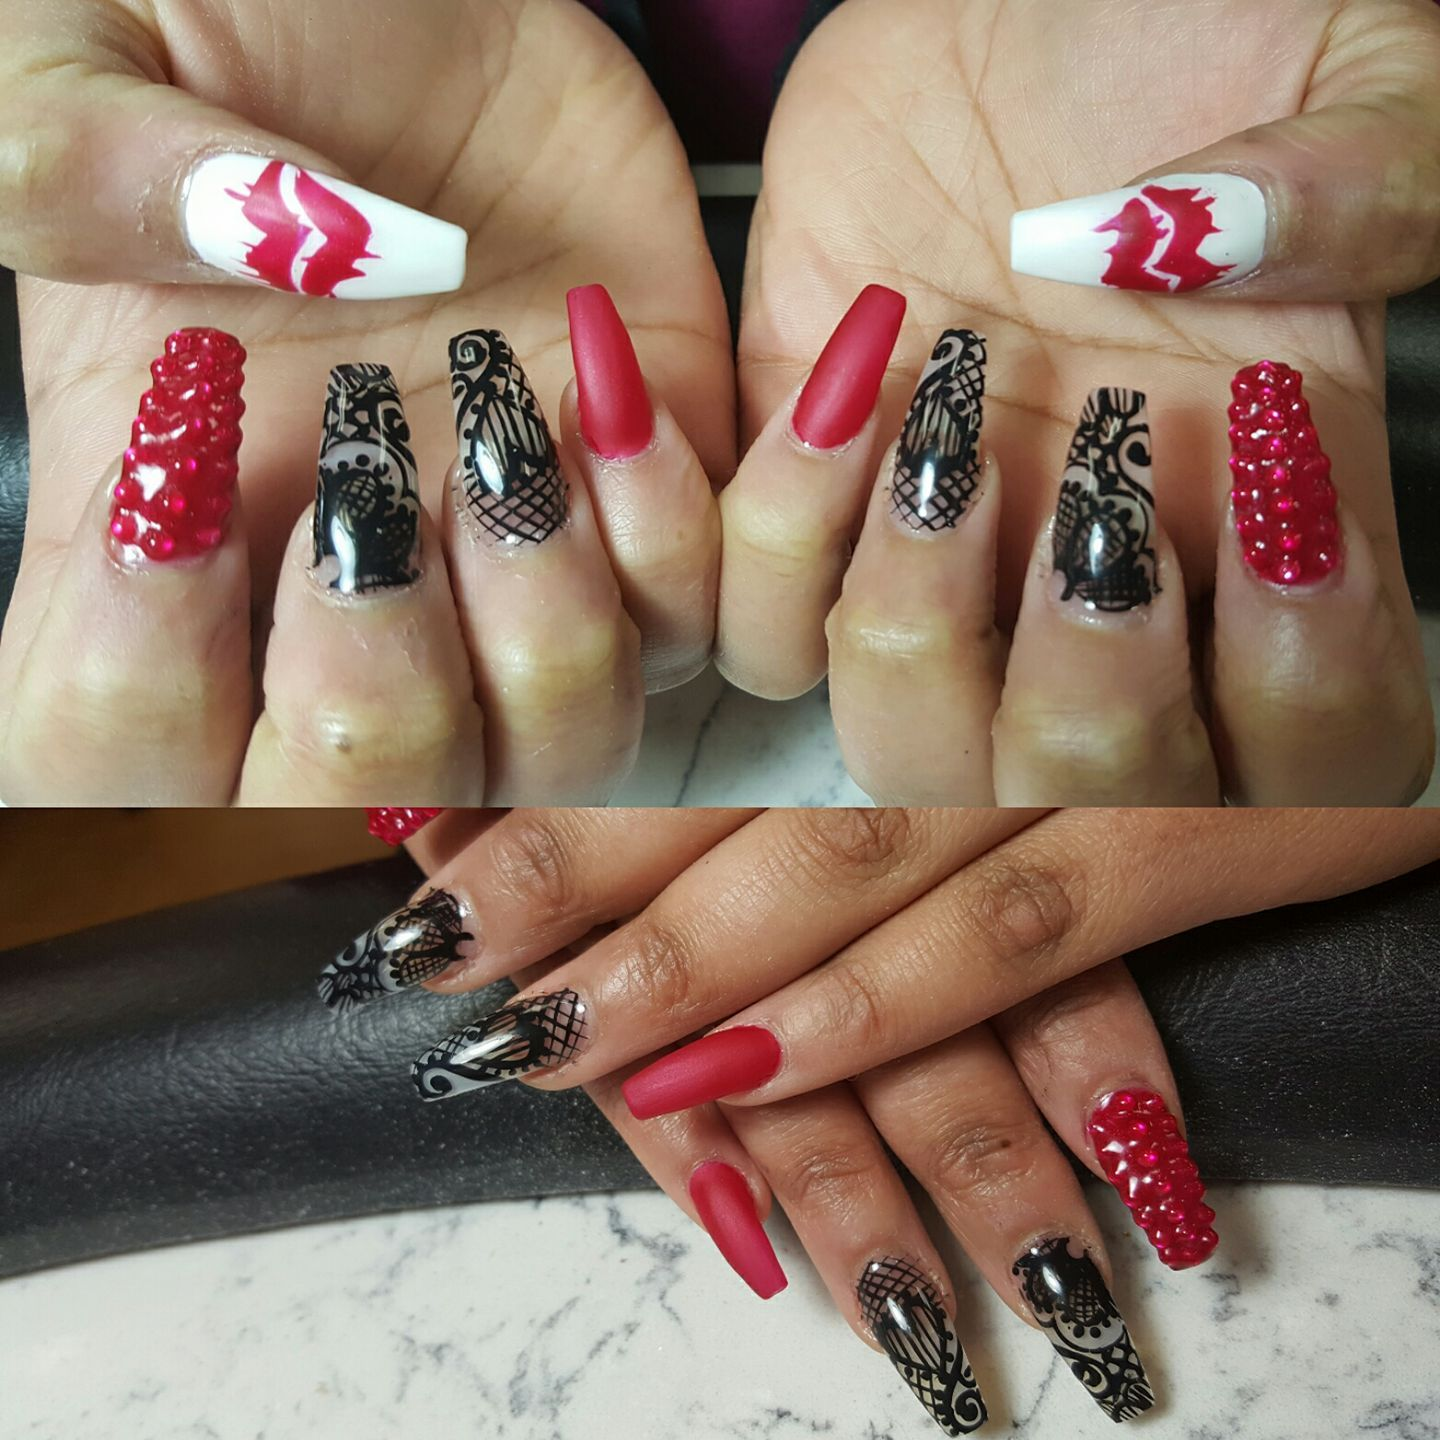 coffin shape nail designs, red nails, black and nude nails, white ...